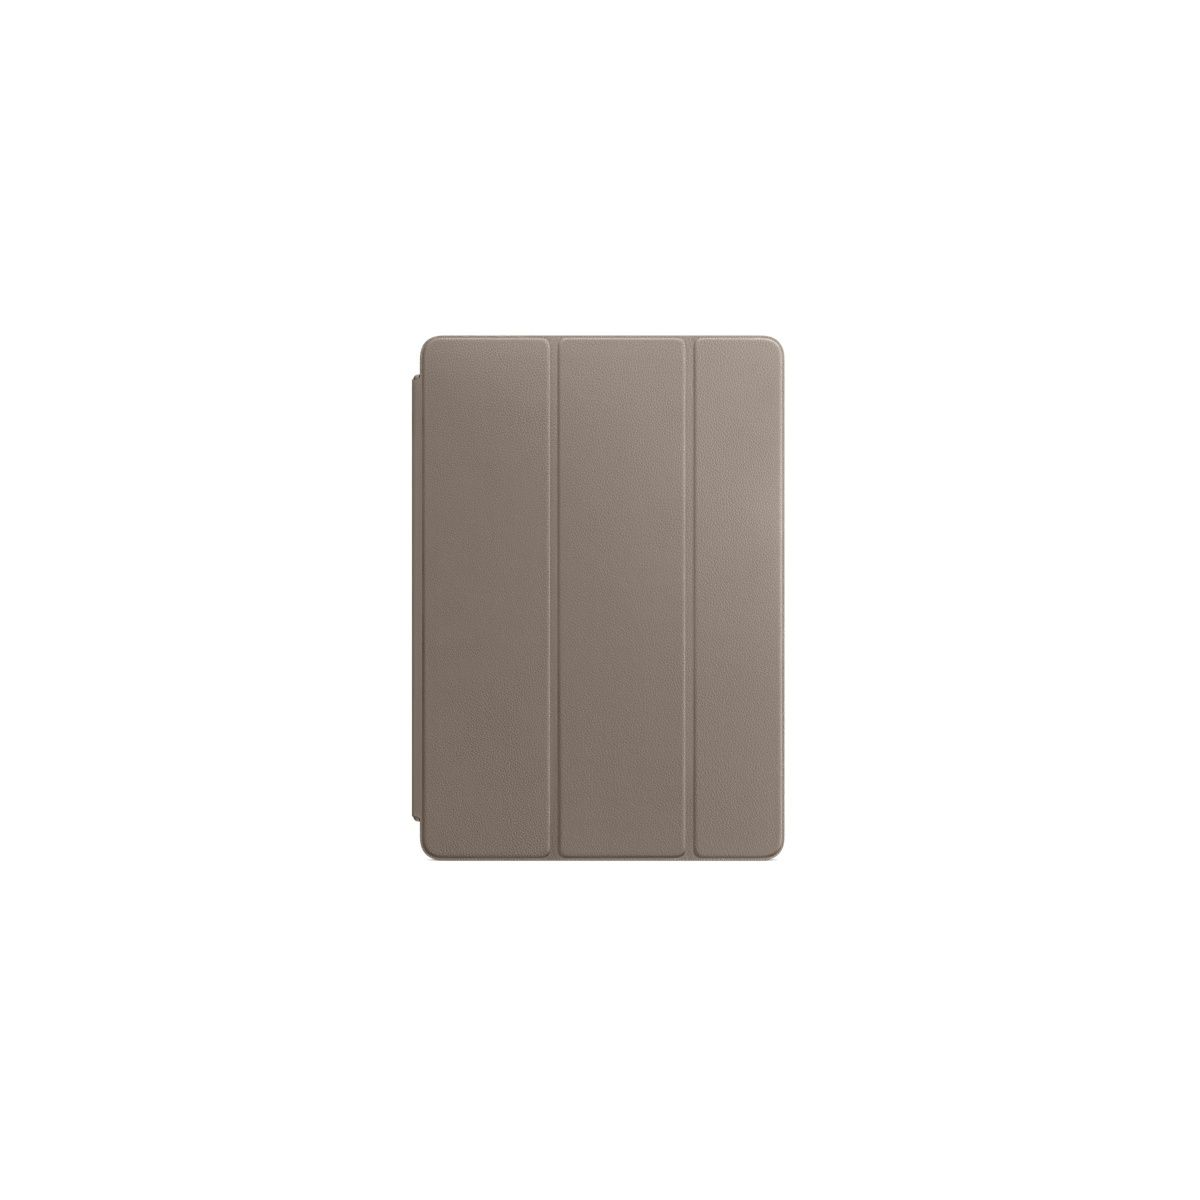 Etui APPLE iPad Pro 10.5' 2017 cuir taupe (photo)